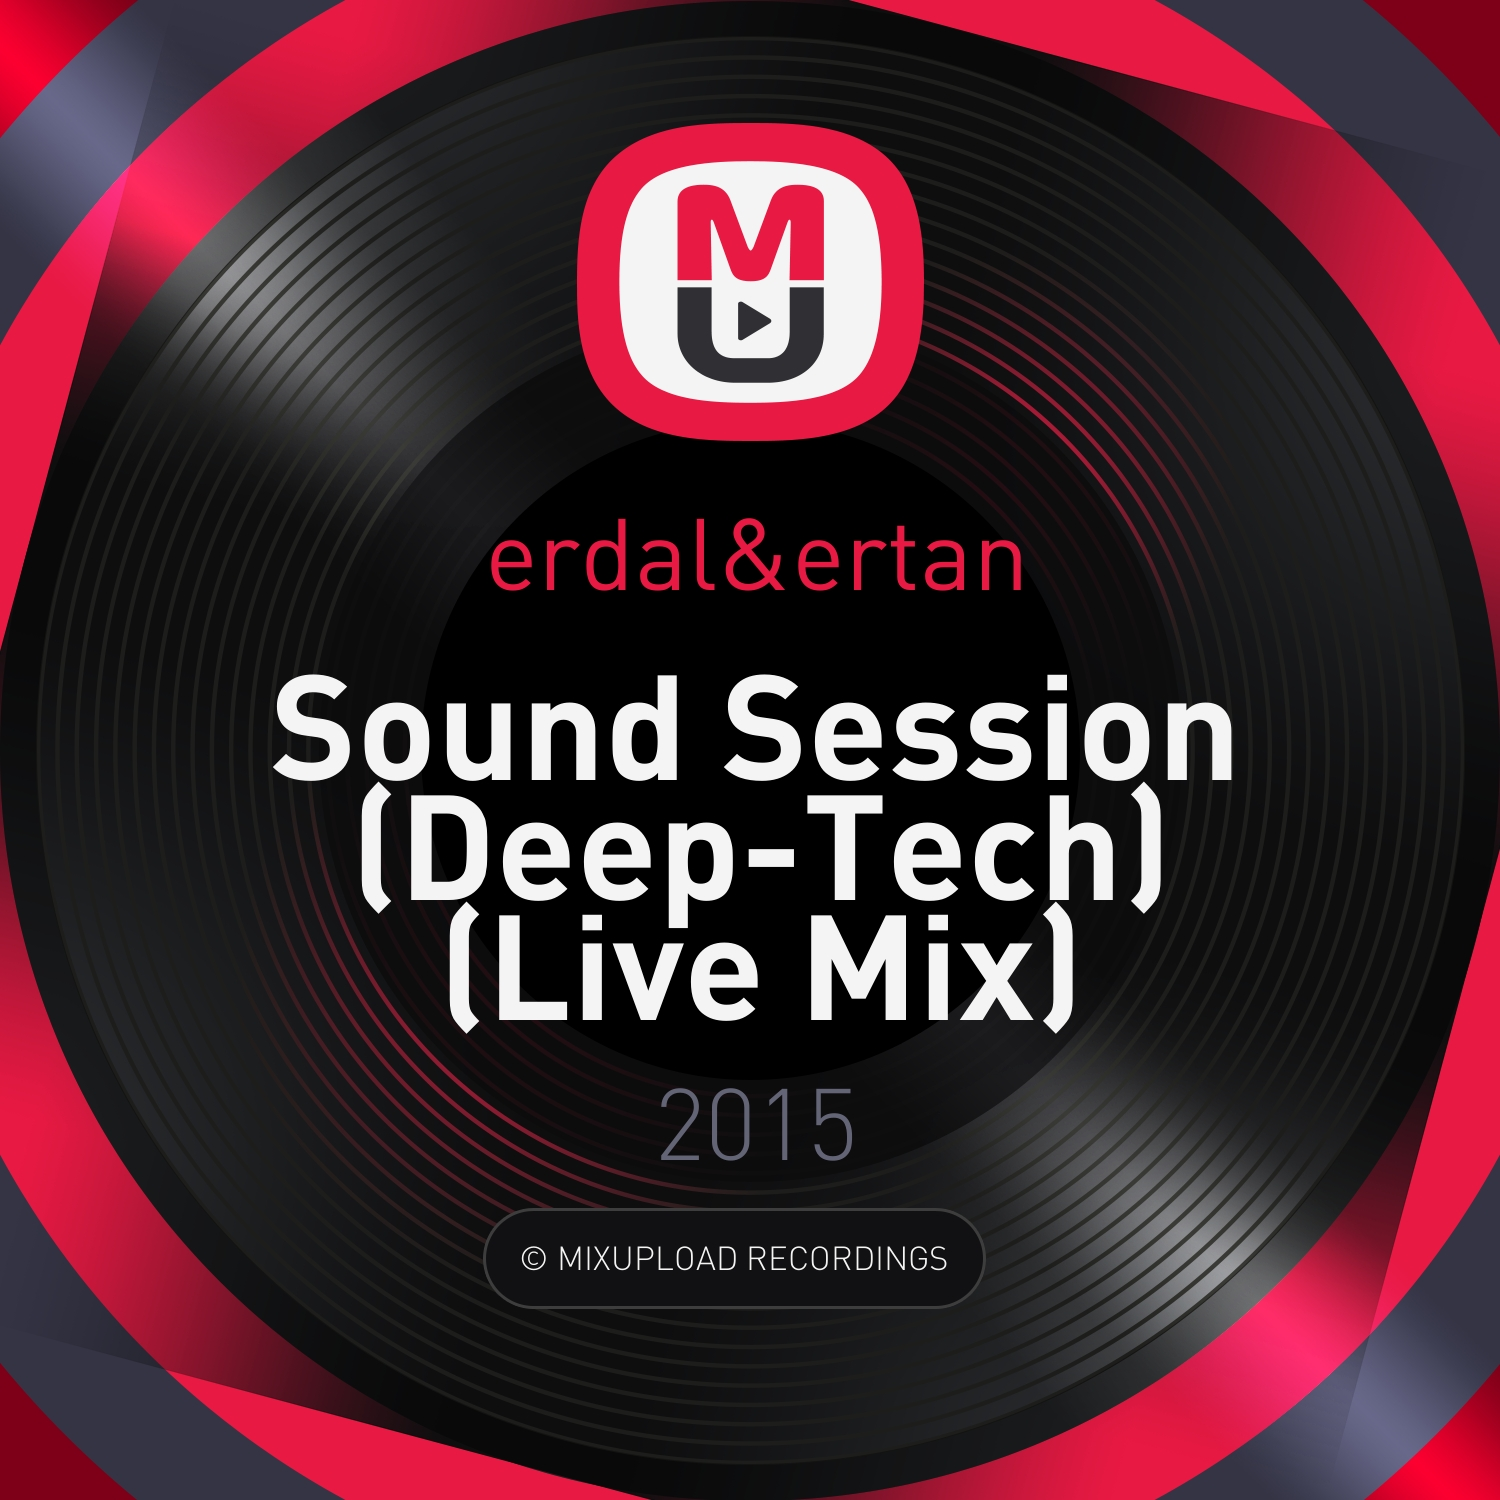 erdal&ertan - Sound Session (Deep-Tech) (Live Mix)